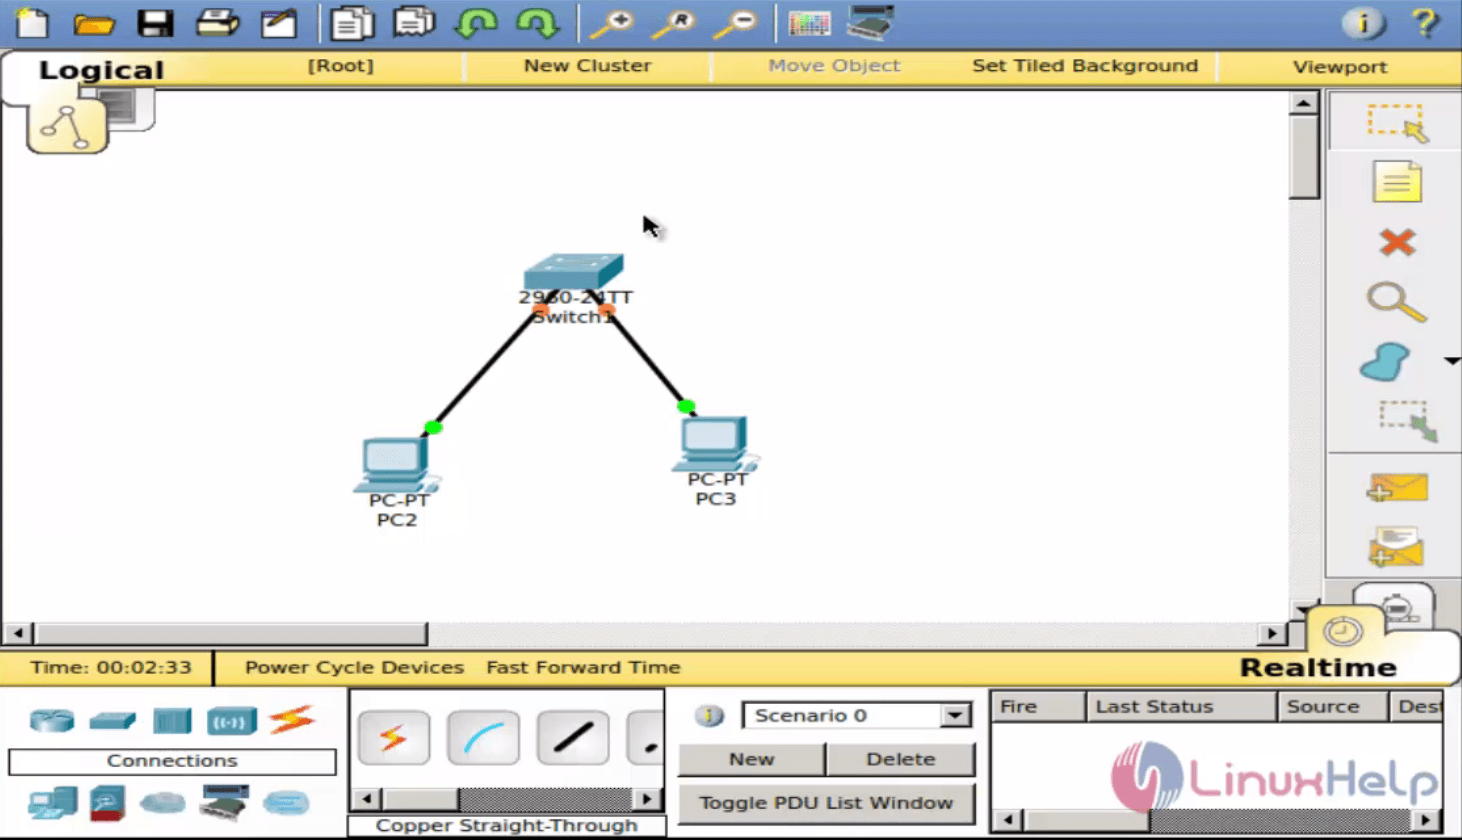 How to Install Cisco Packet Tracer in Ubuntu | LinuxHelp Tutorials